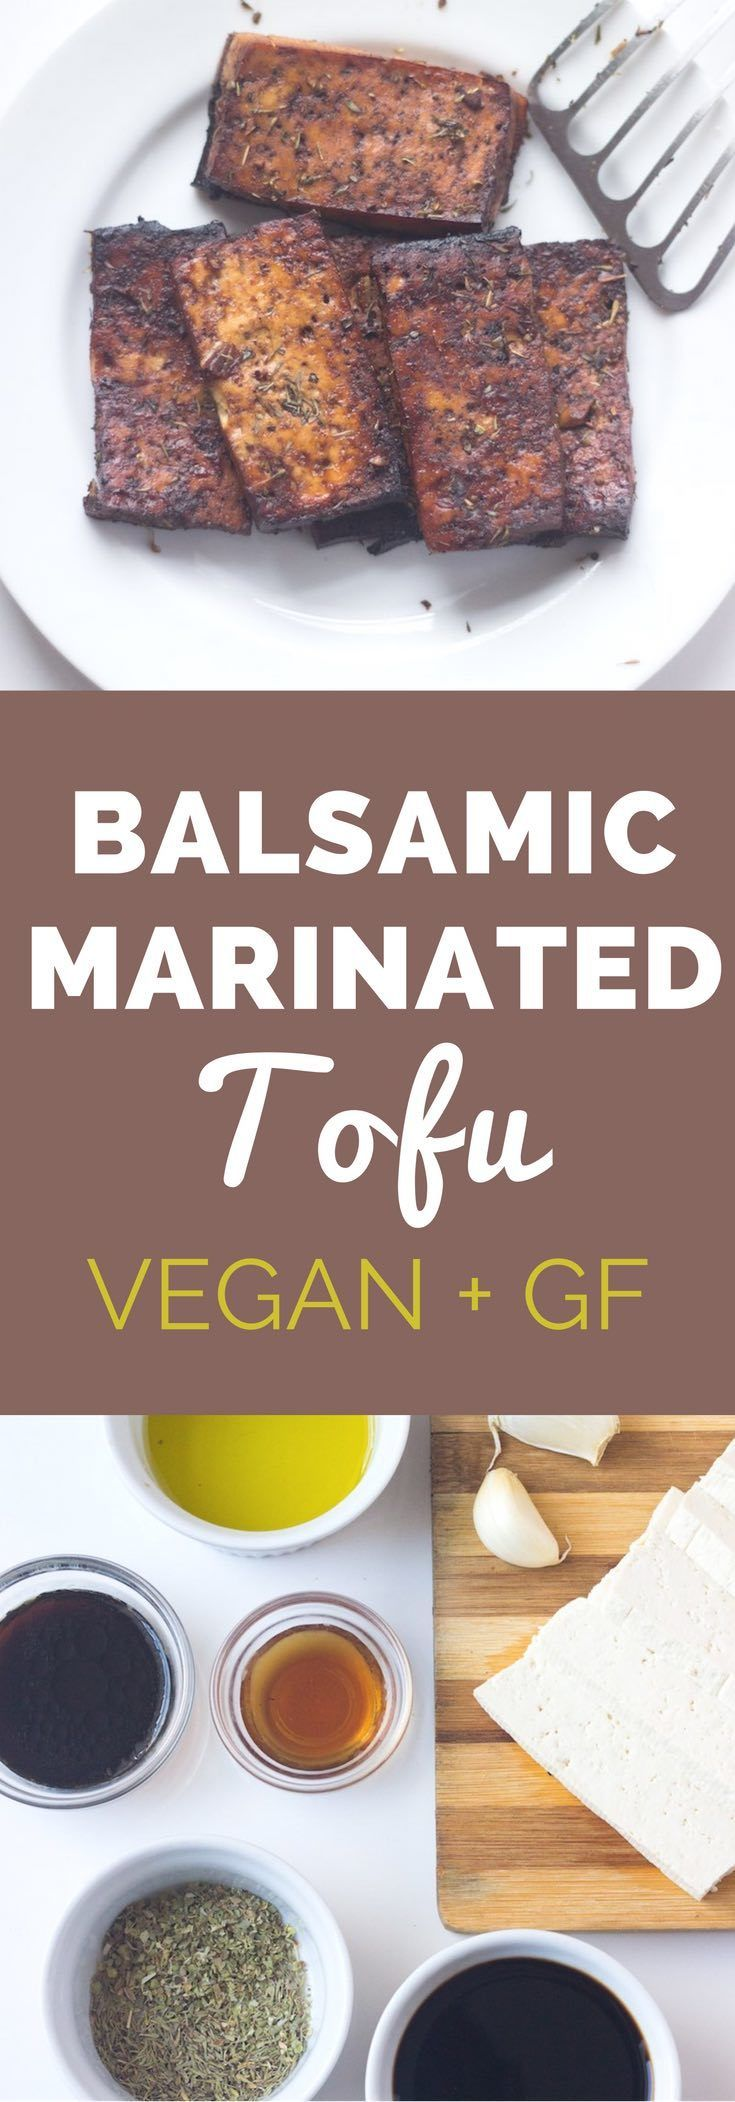 Make a batch of this easy vegan marinated tofu to have on sandwiches, salads, or served with rice or quinoa.